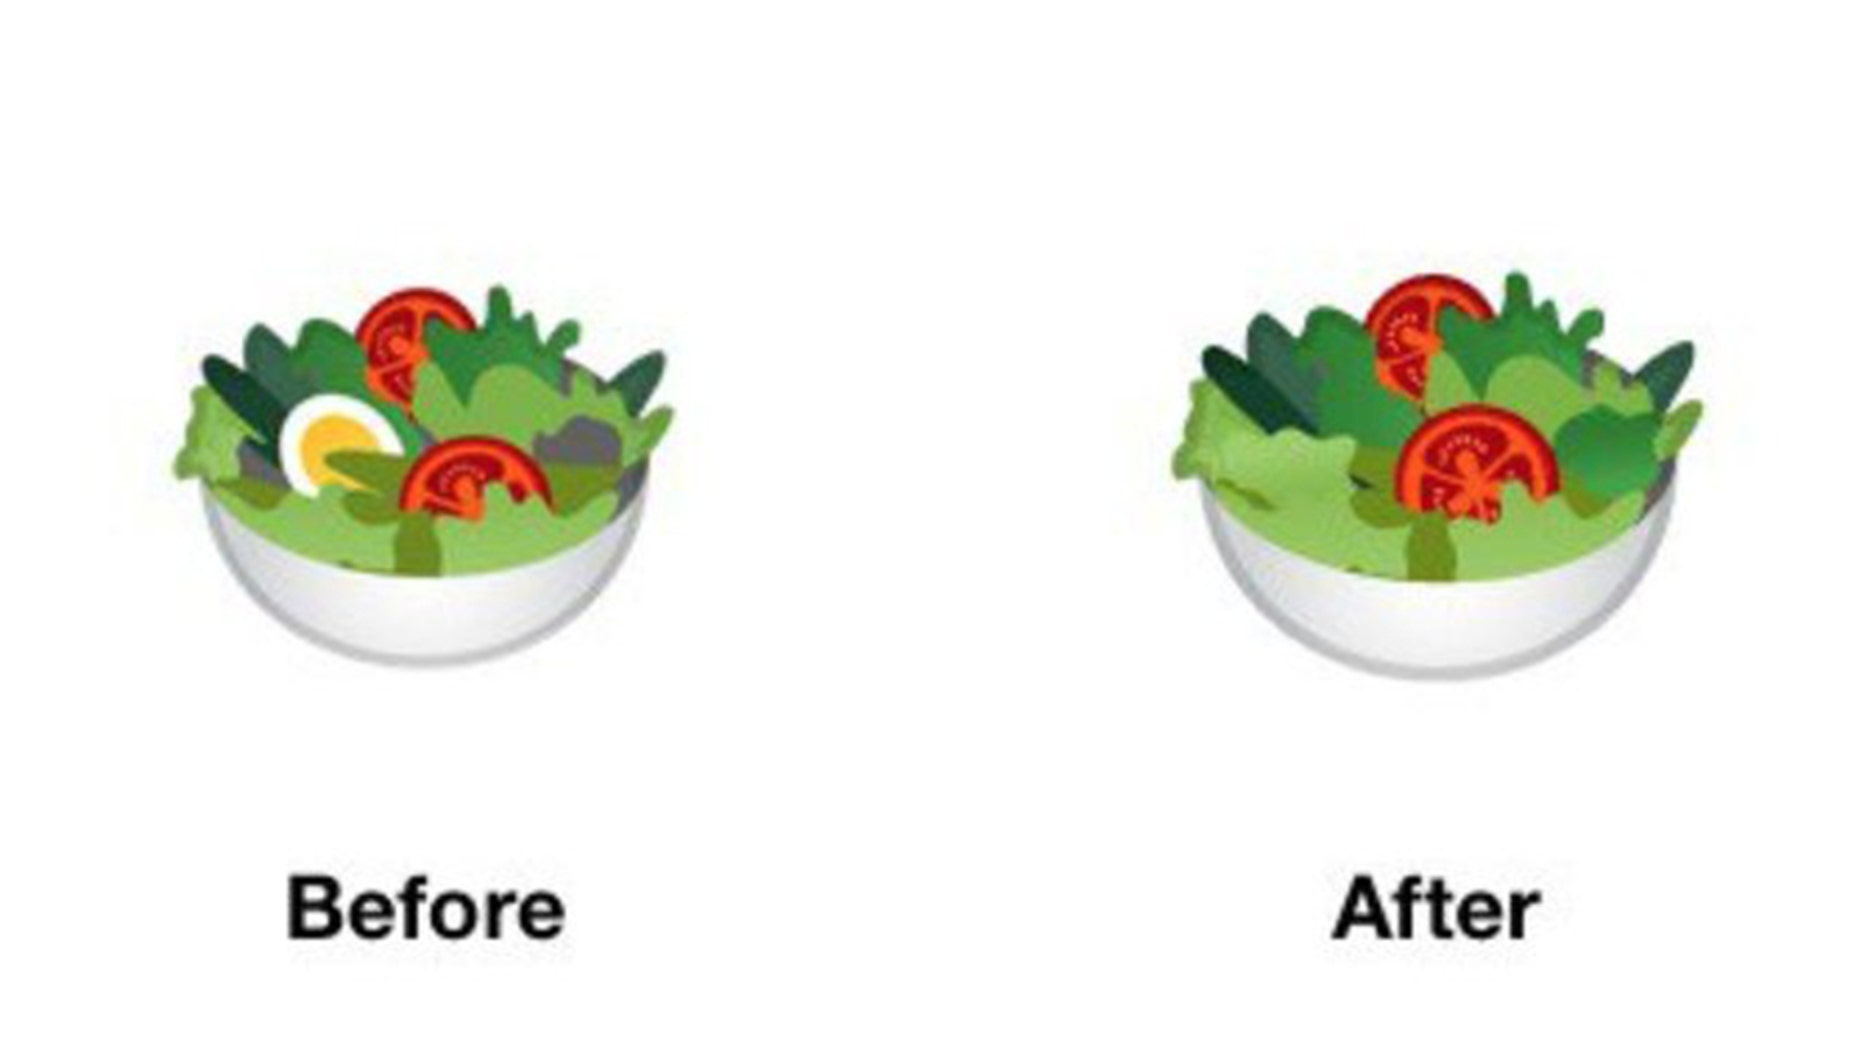 The original salad emoji featured an egg, which Google removed.